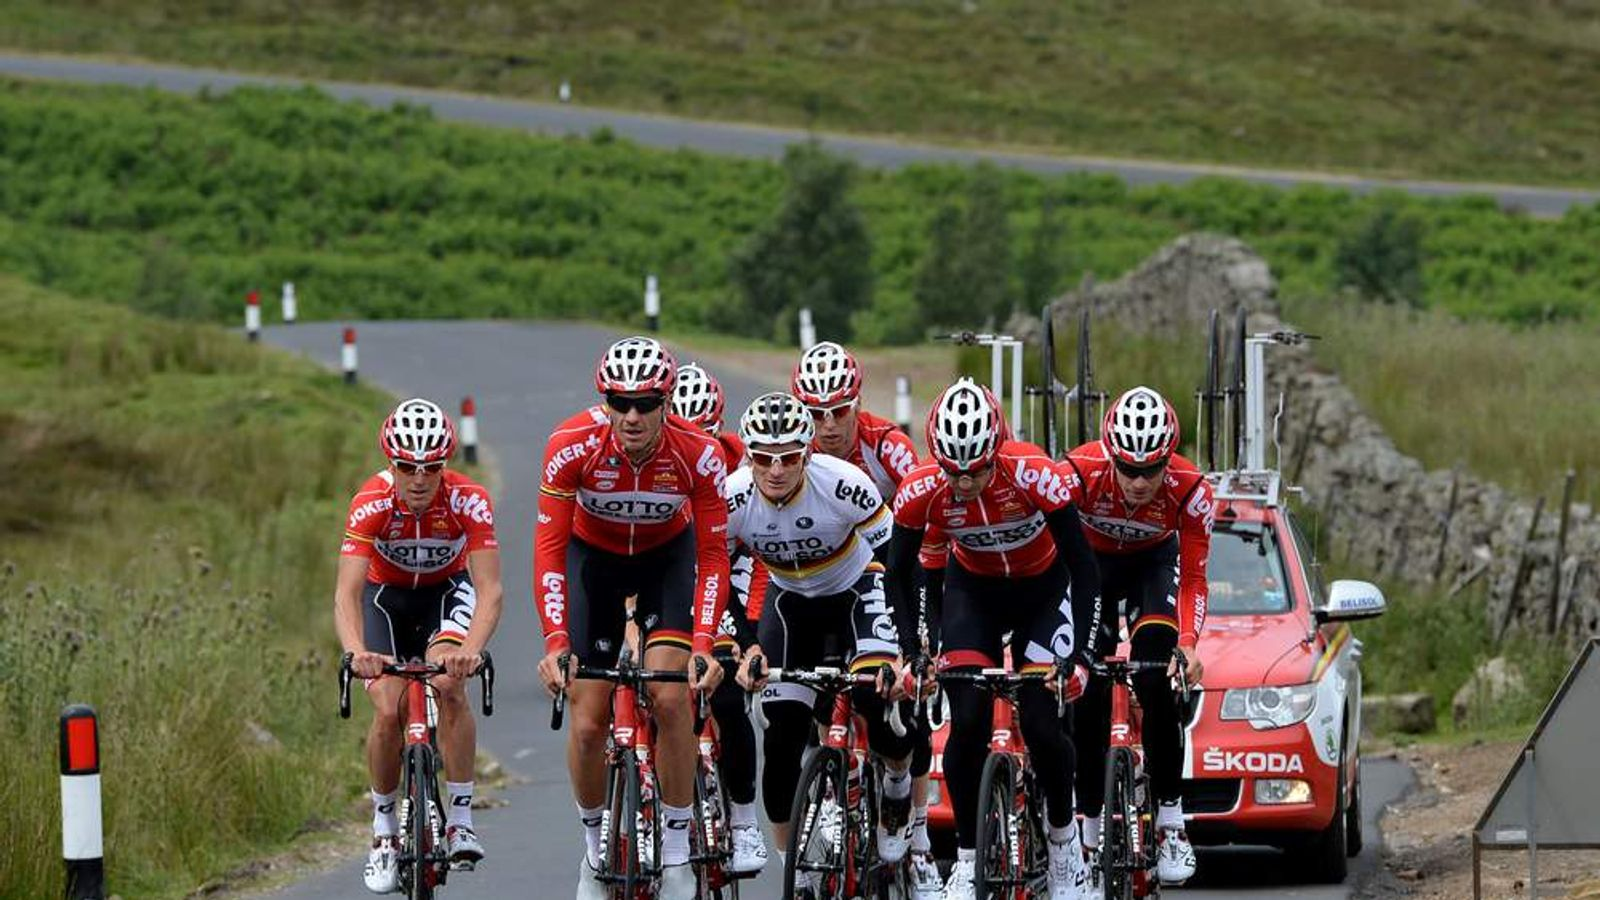 Cycling - Tour de France Previews - Day Three